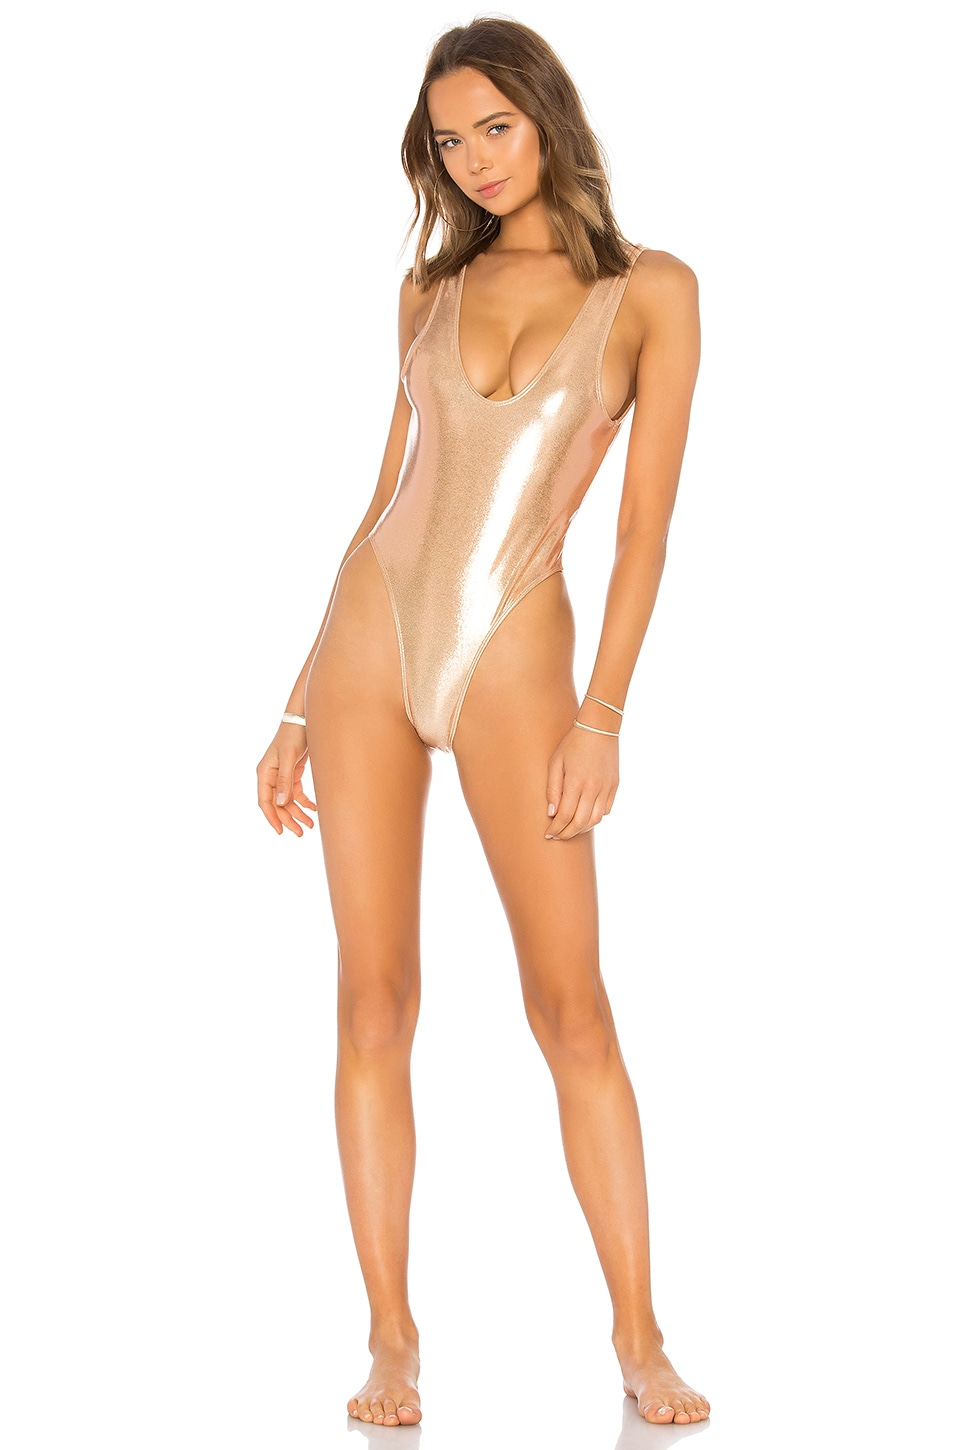 MINIMALE ANIMALE THE TYLER SHIMMER SUIT